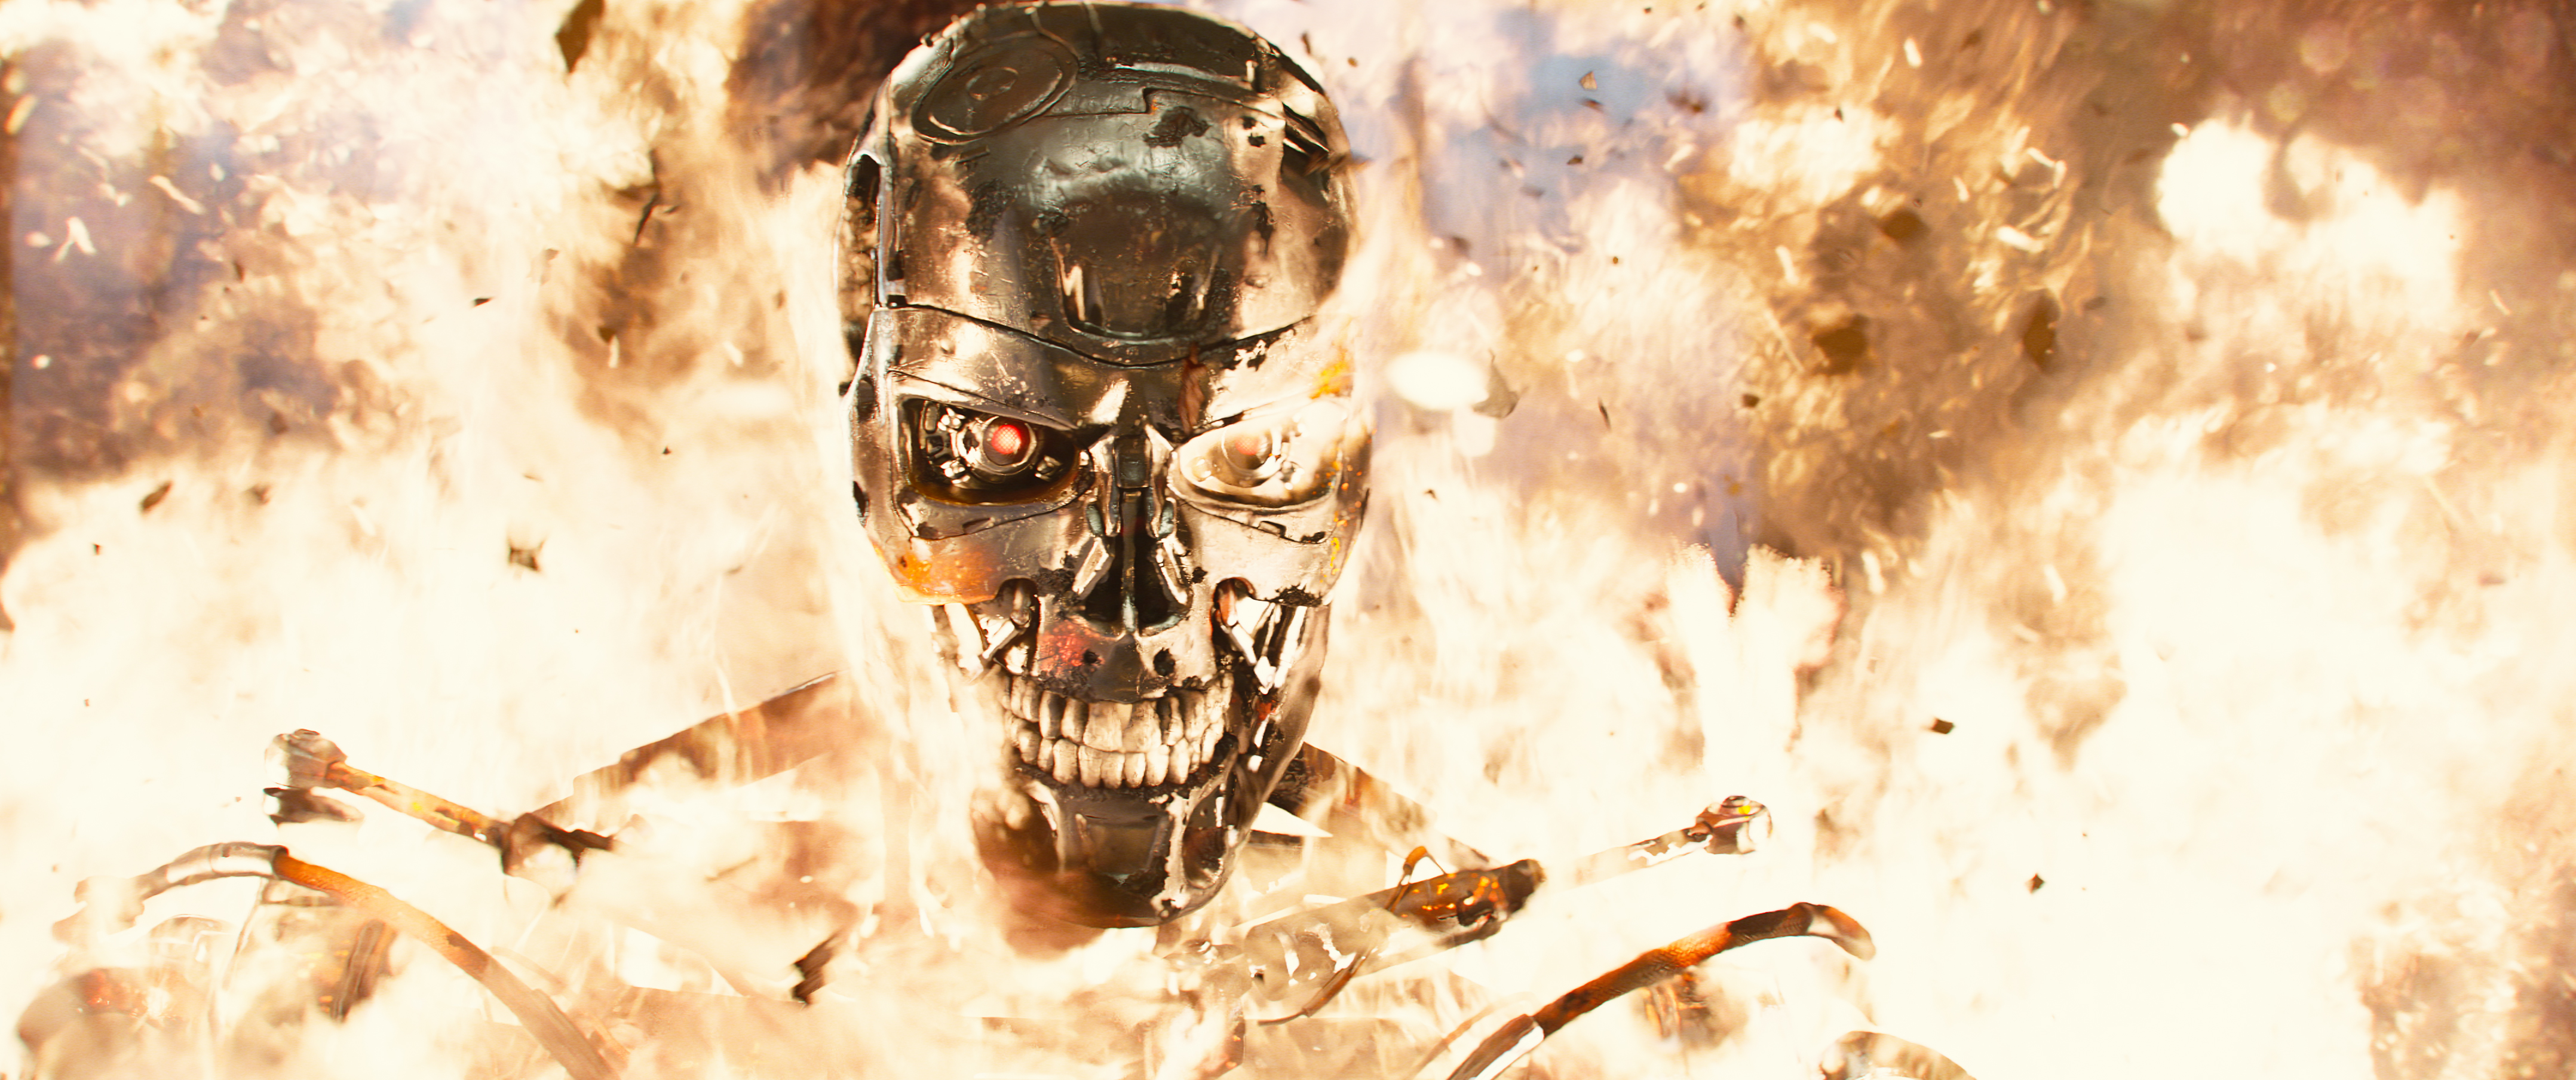 Terminator Genisys. Arnold, stop coming back